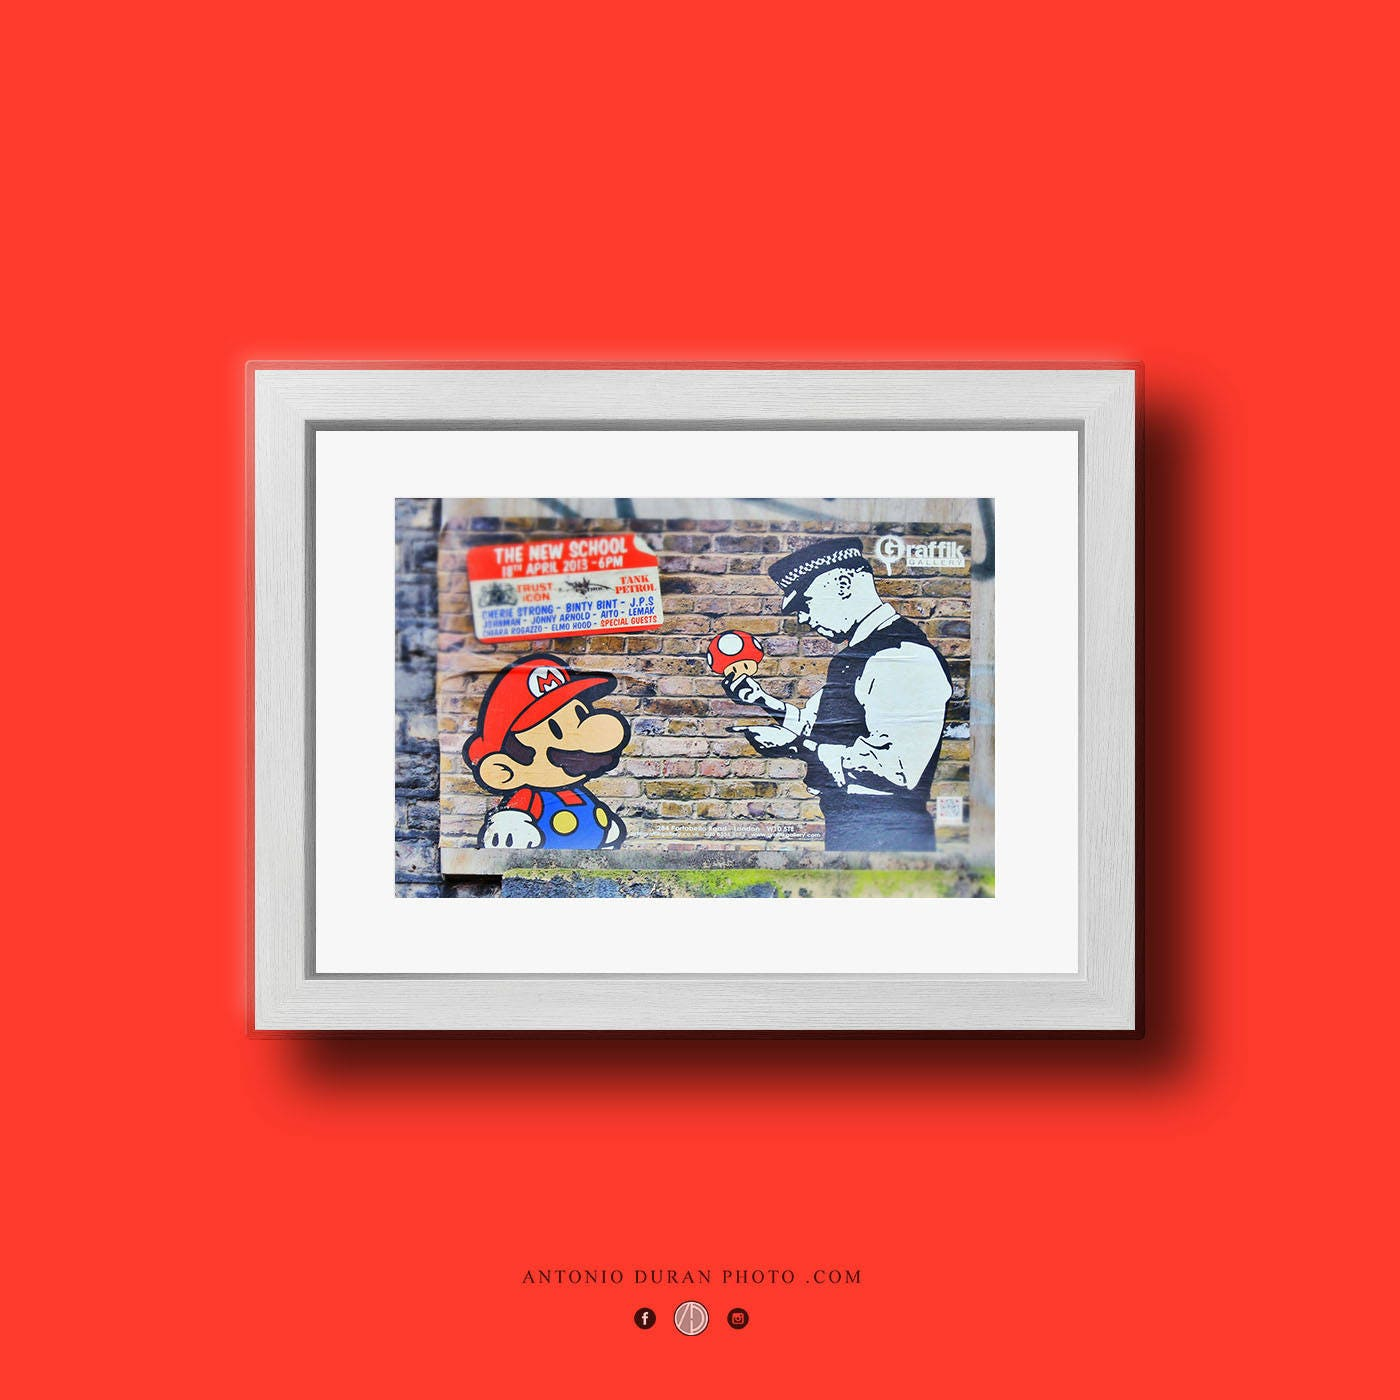 Mario and Police street Art A3 Size